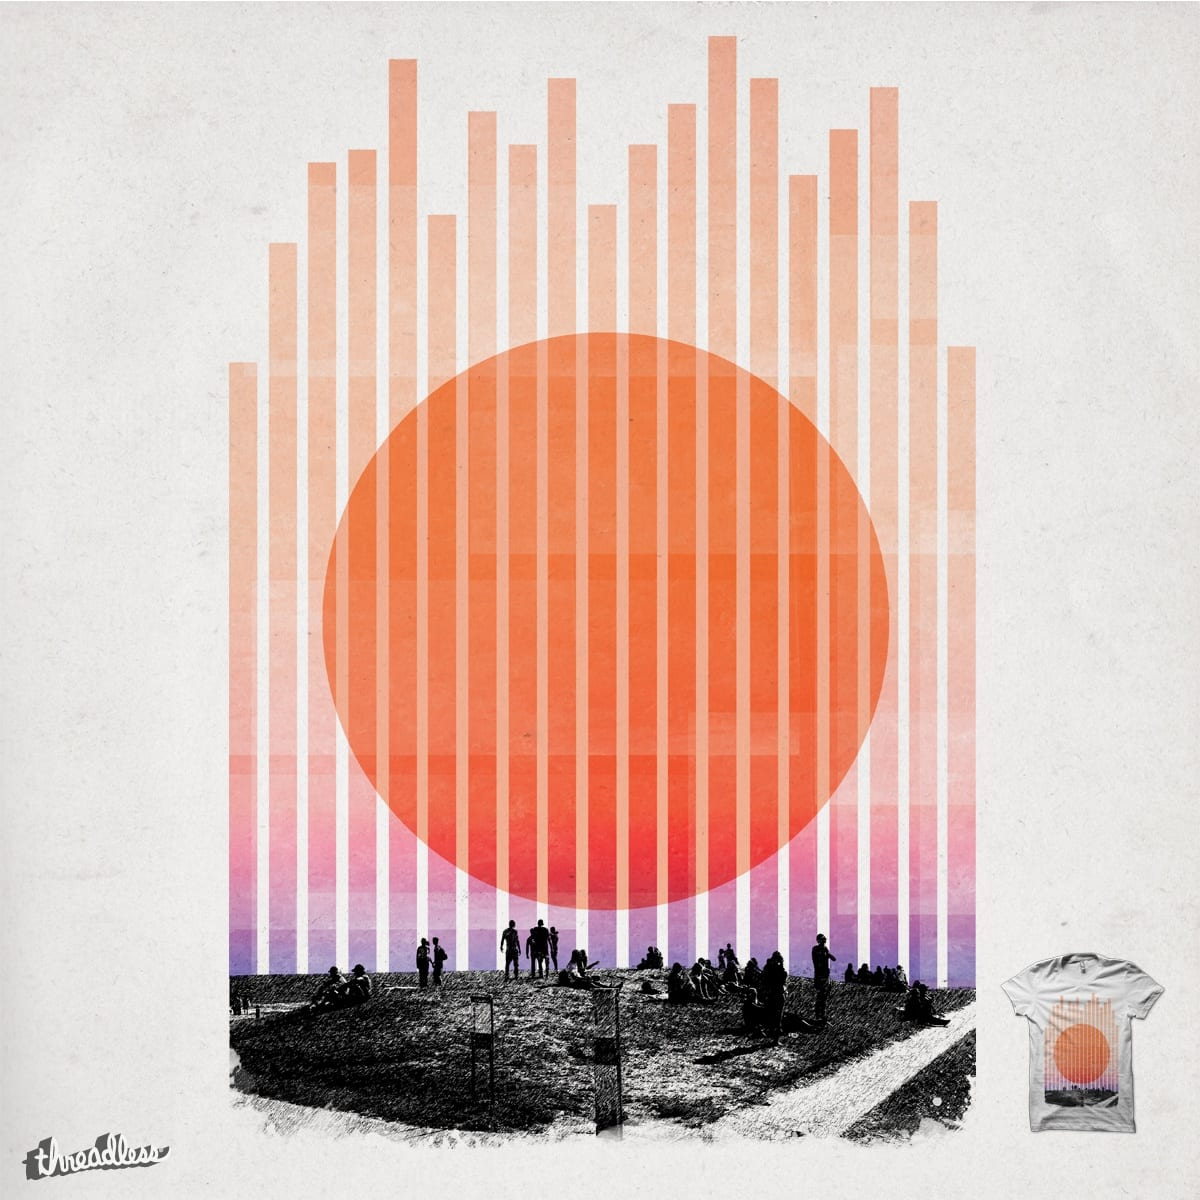 Summer Nights by nils285 on Threadless